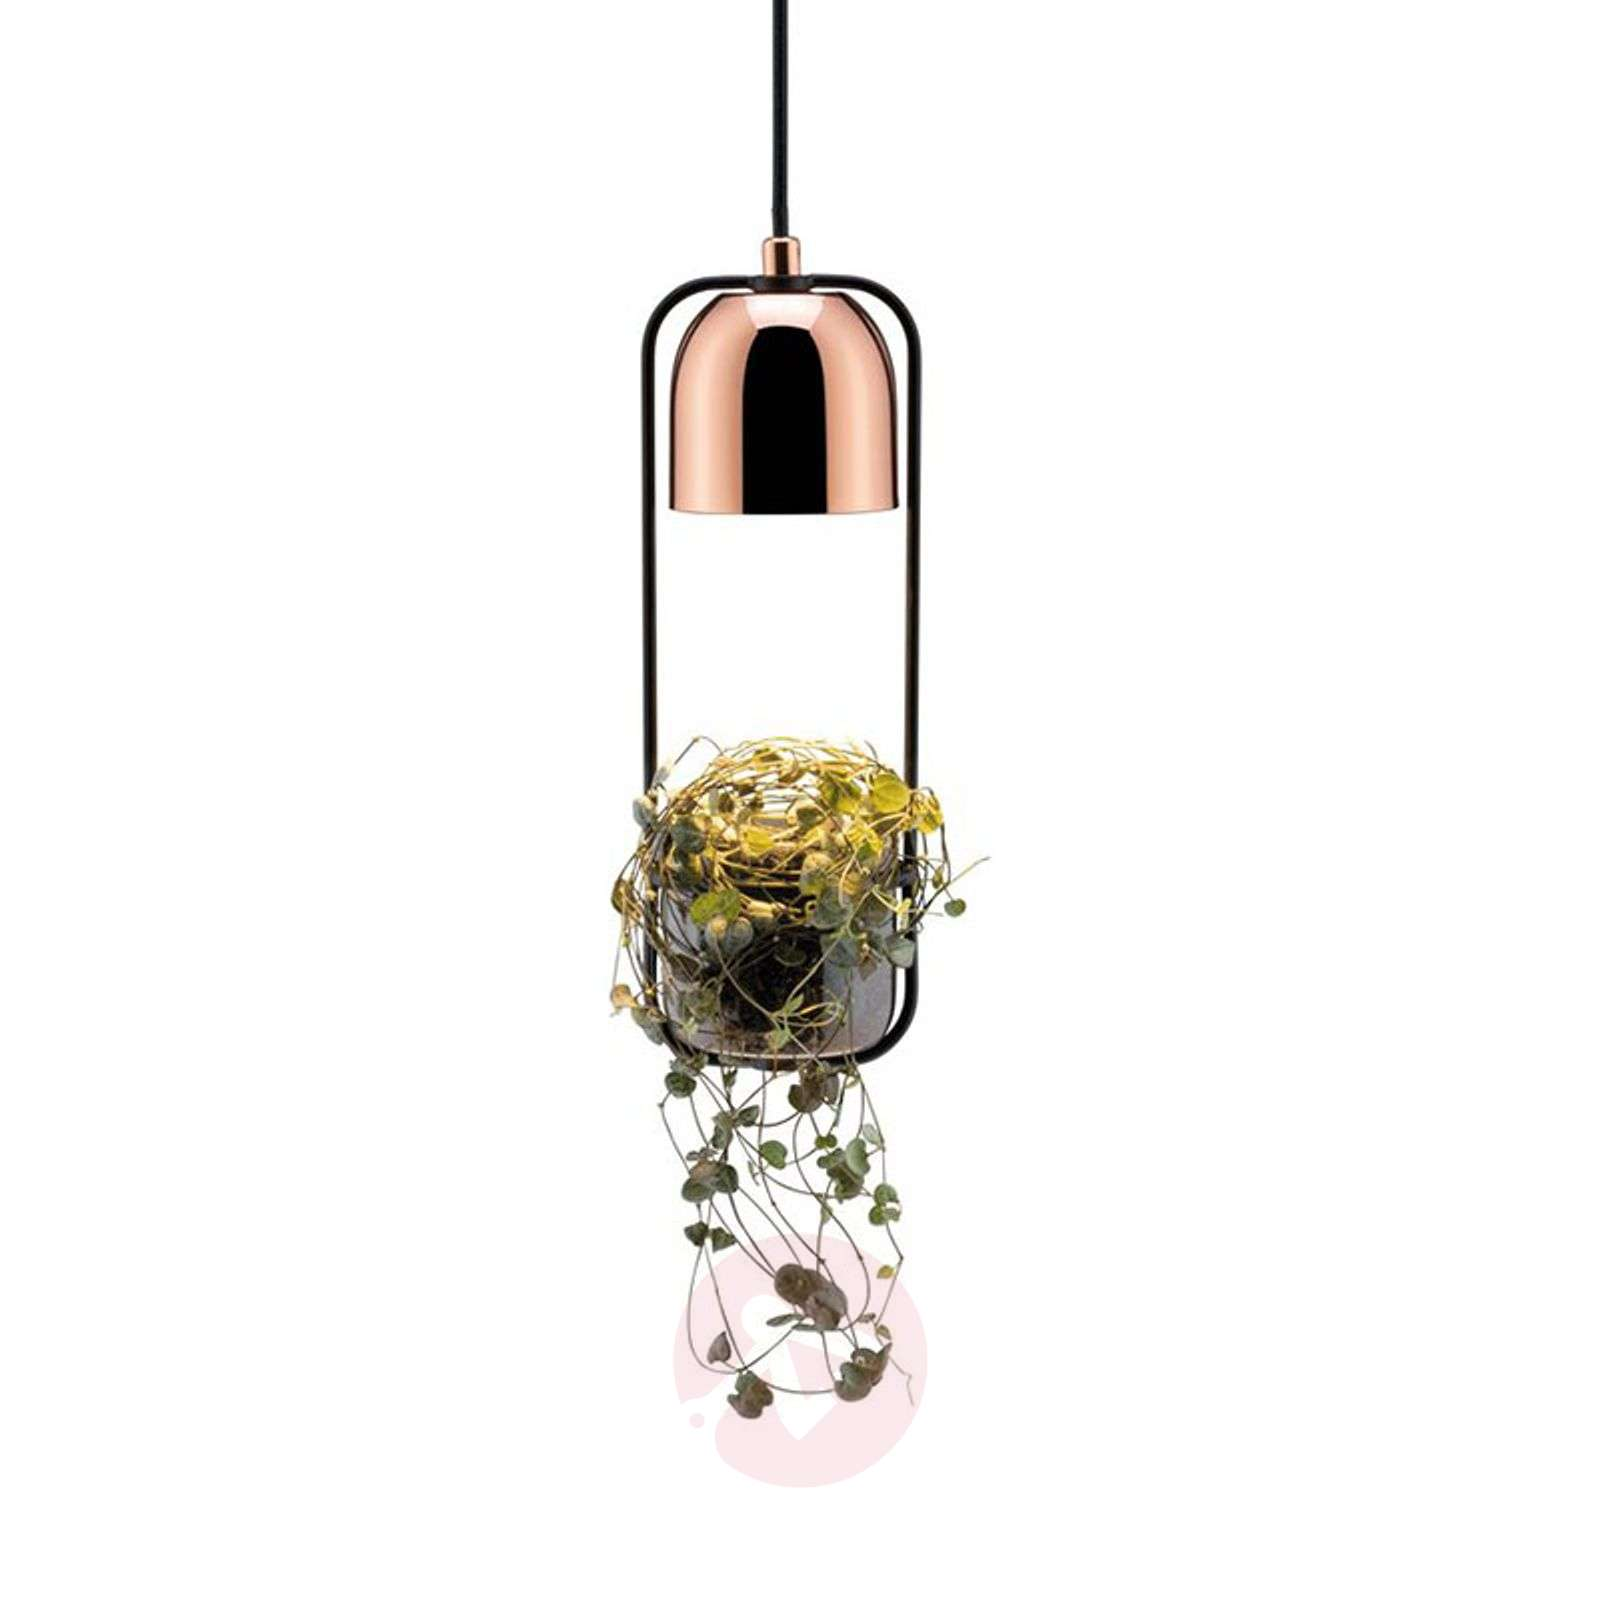 Paulmann suspension Fanja avec pot de fleur-7601445-01